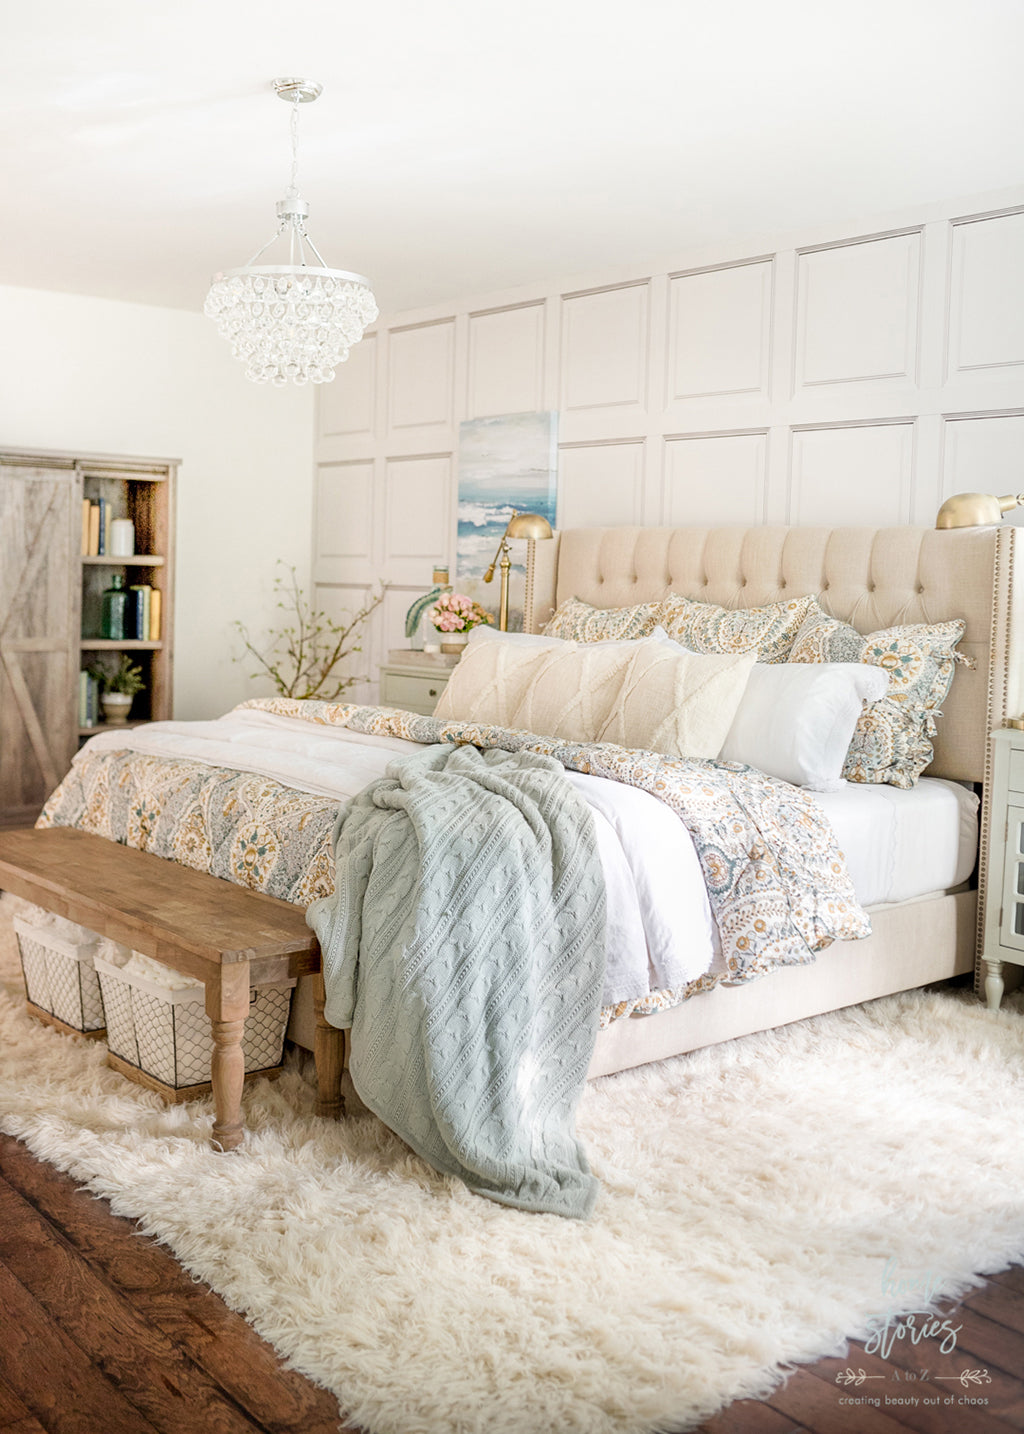 Cozy Coastal Farmhouse Bedroom Ideas from Home Stories A-Z